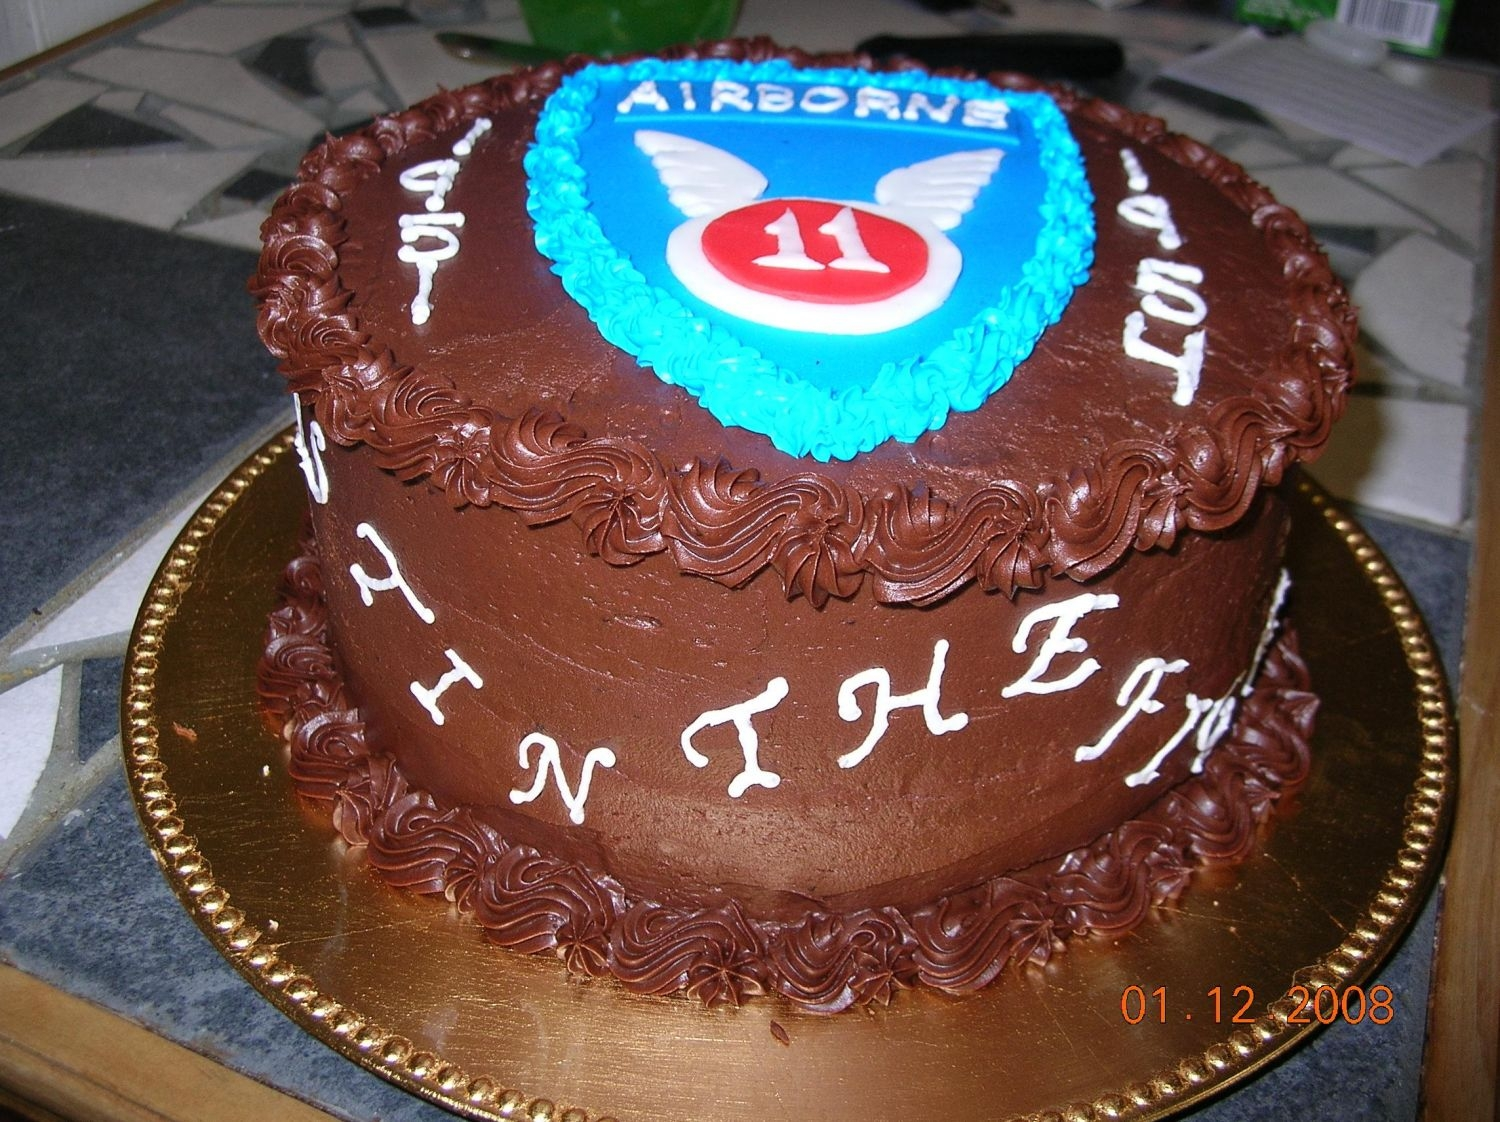 11Th Airborne Birthday   Chocolate cake w/ chocolate icing. Airborne patch is made of fondant.